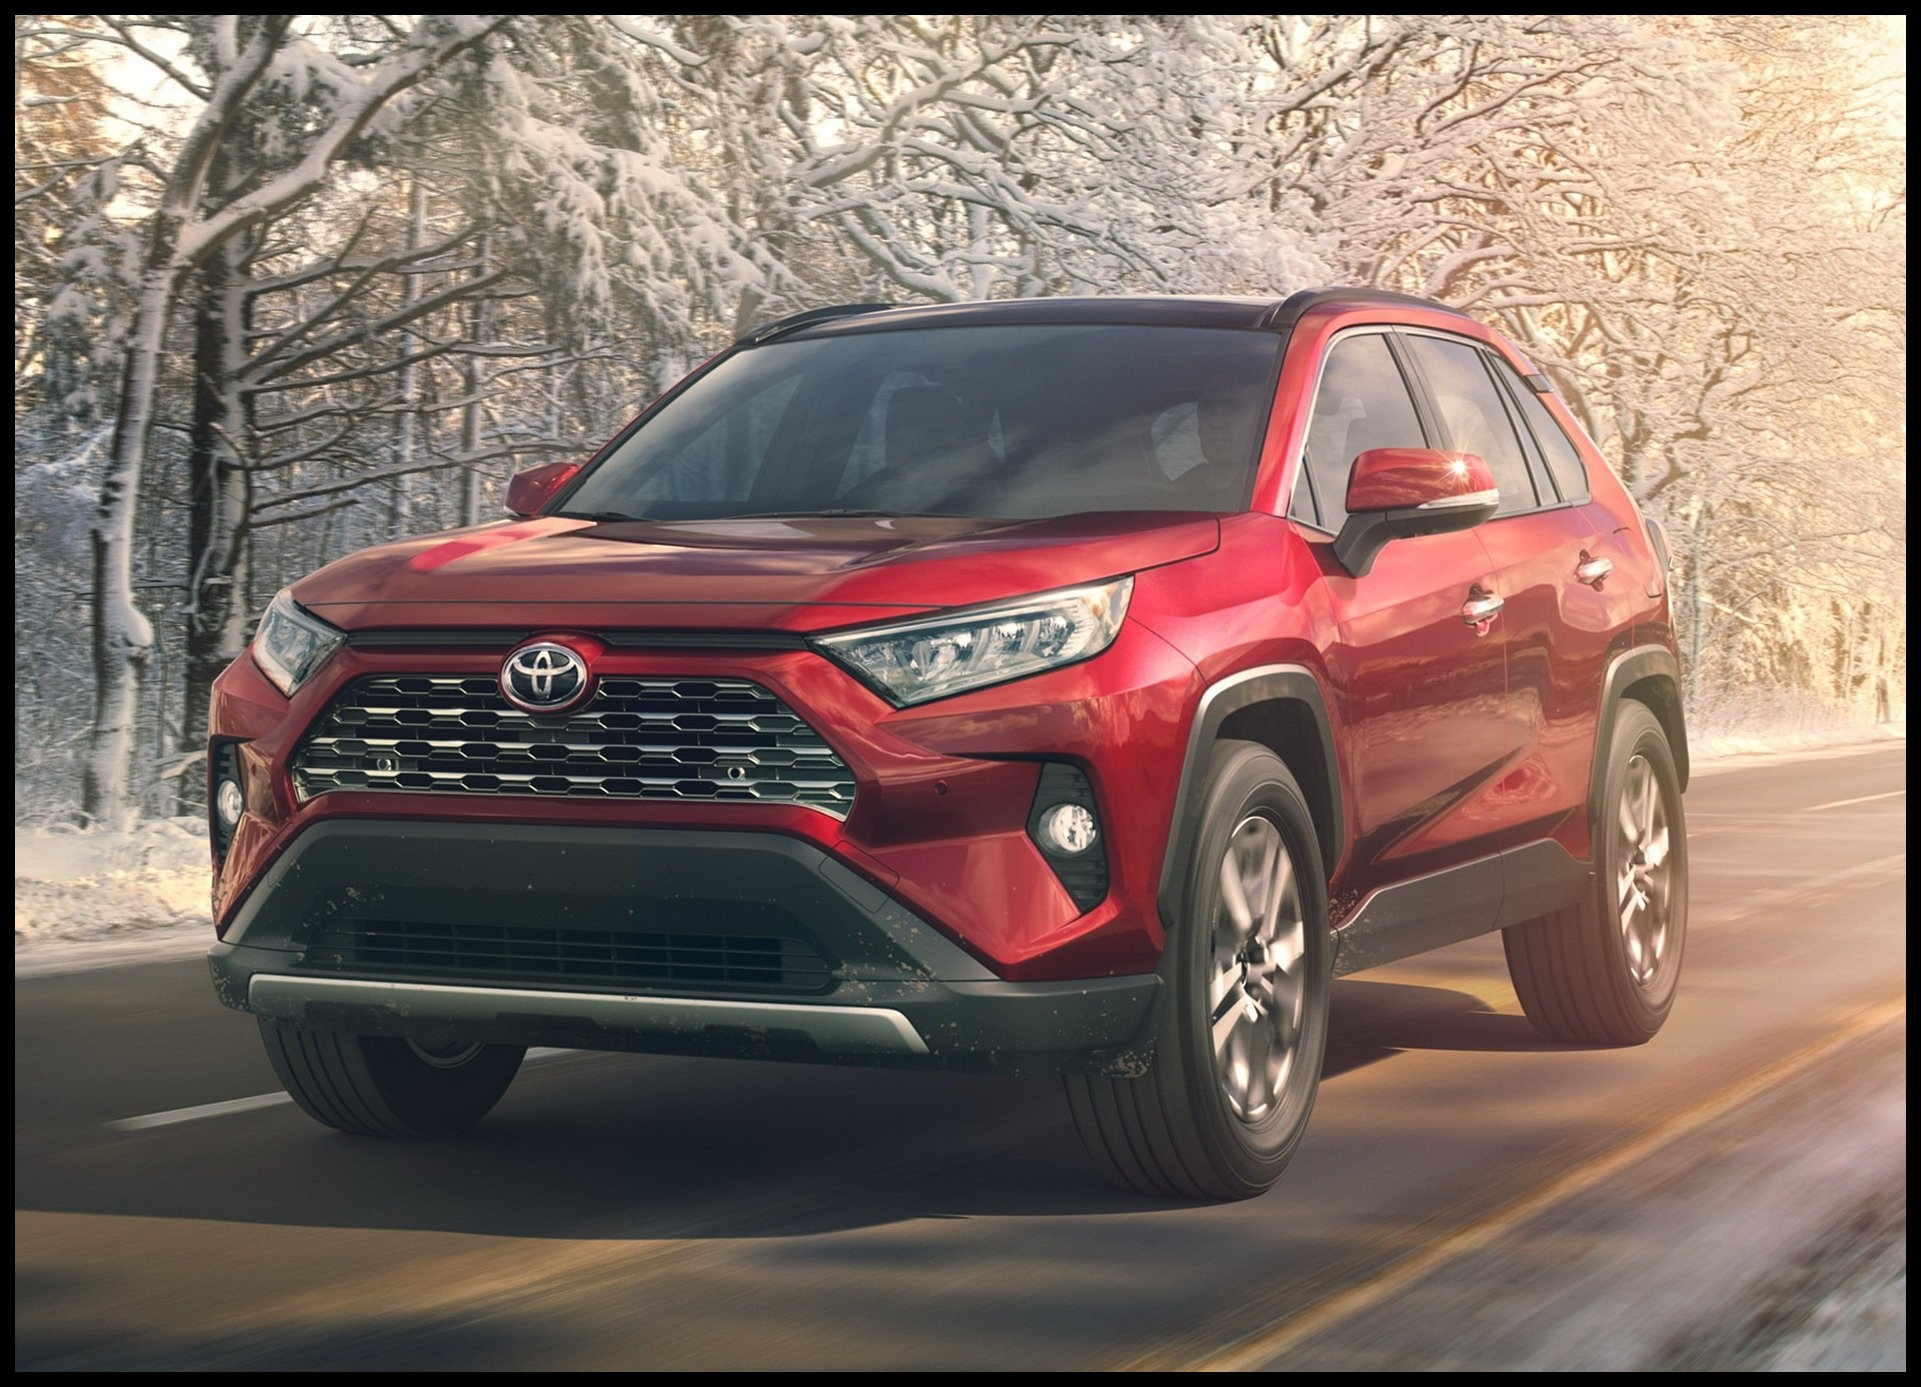 Nowa Toyota Rav4 2019 All New 2019 Toyota RAV4 Gets Aggressive In